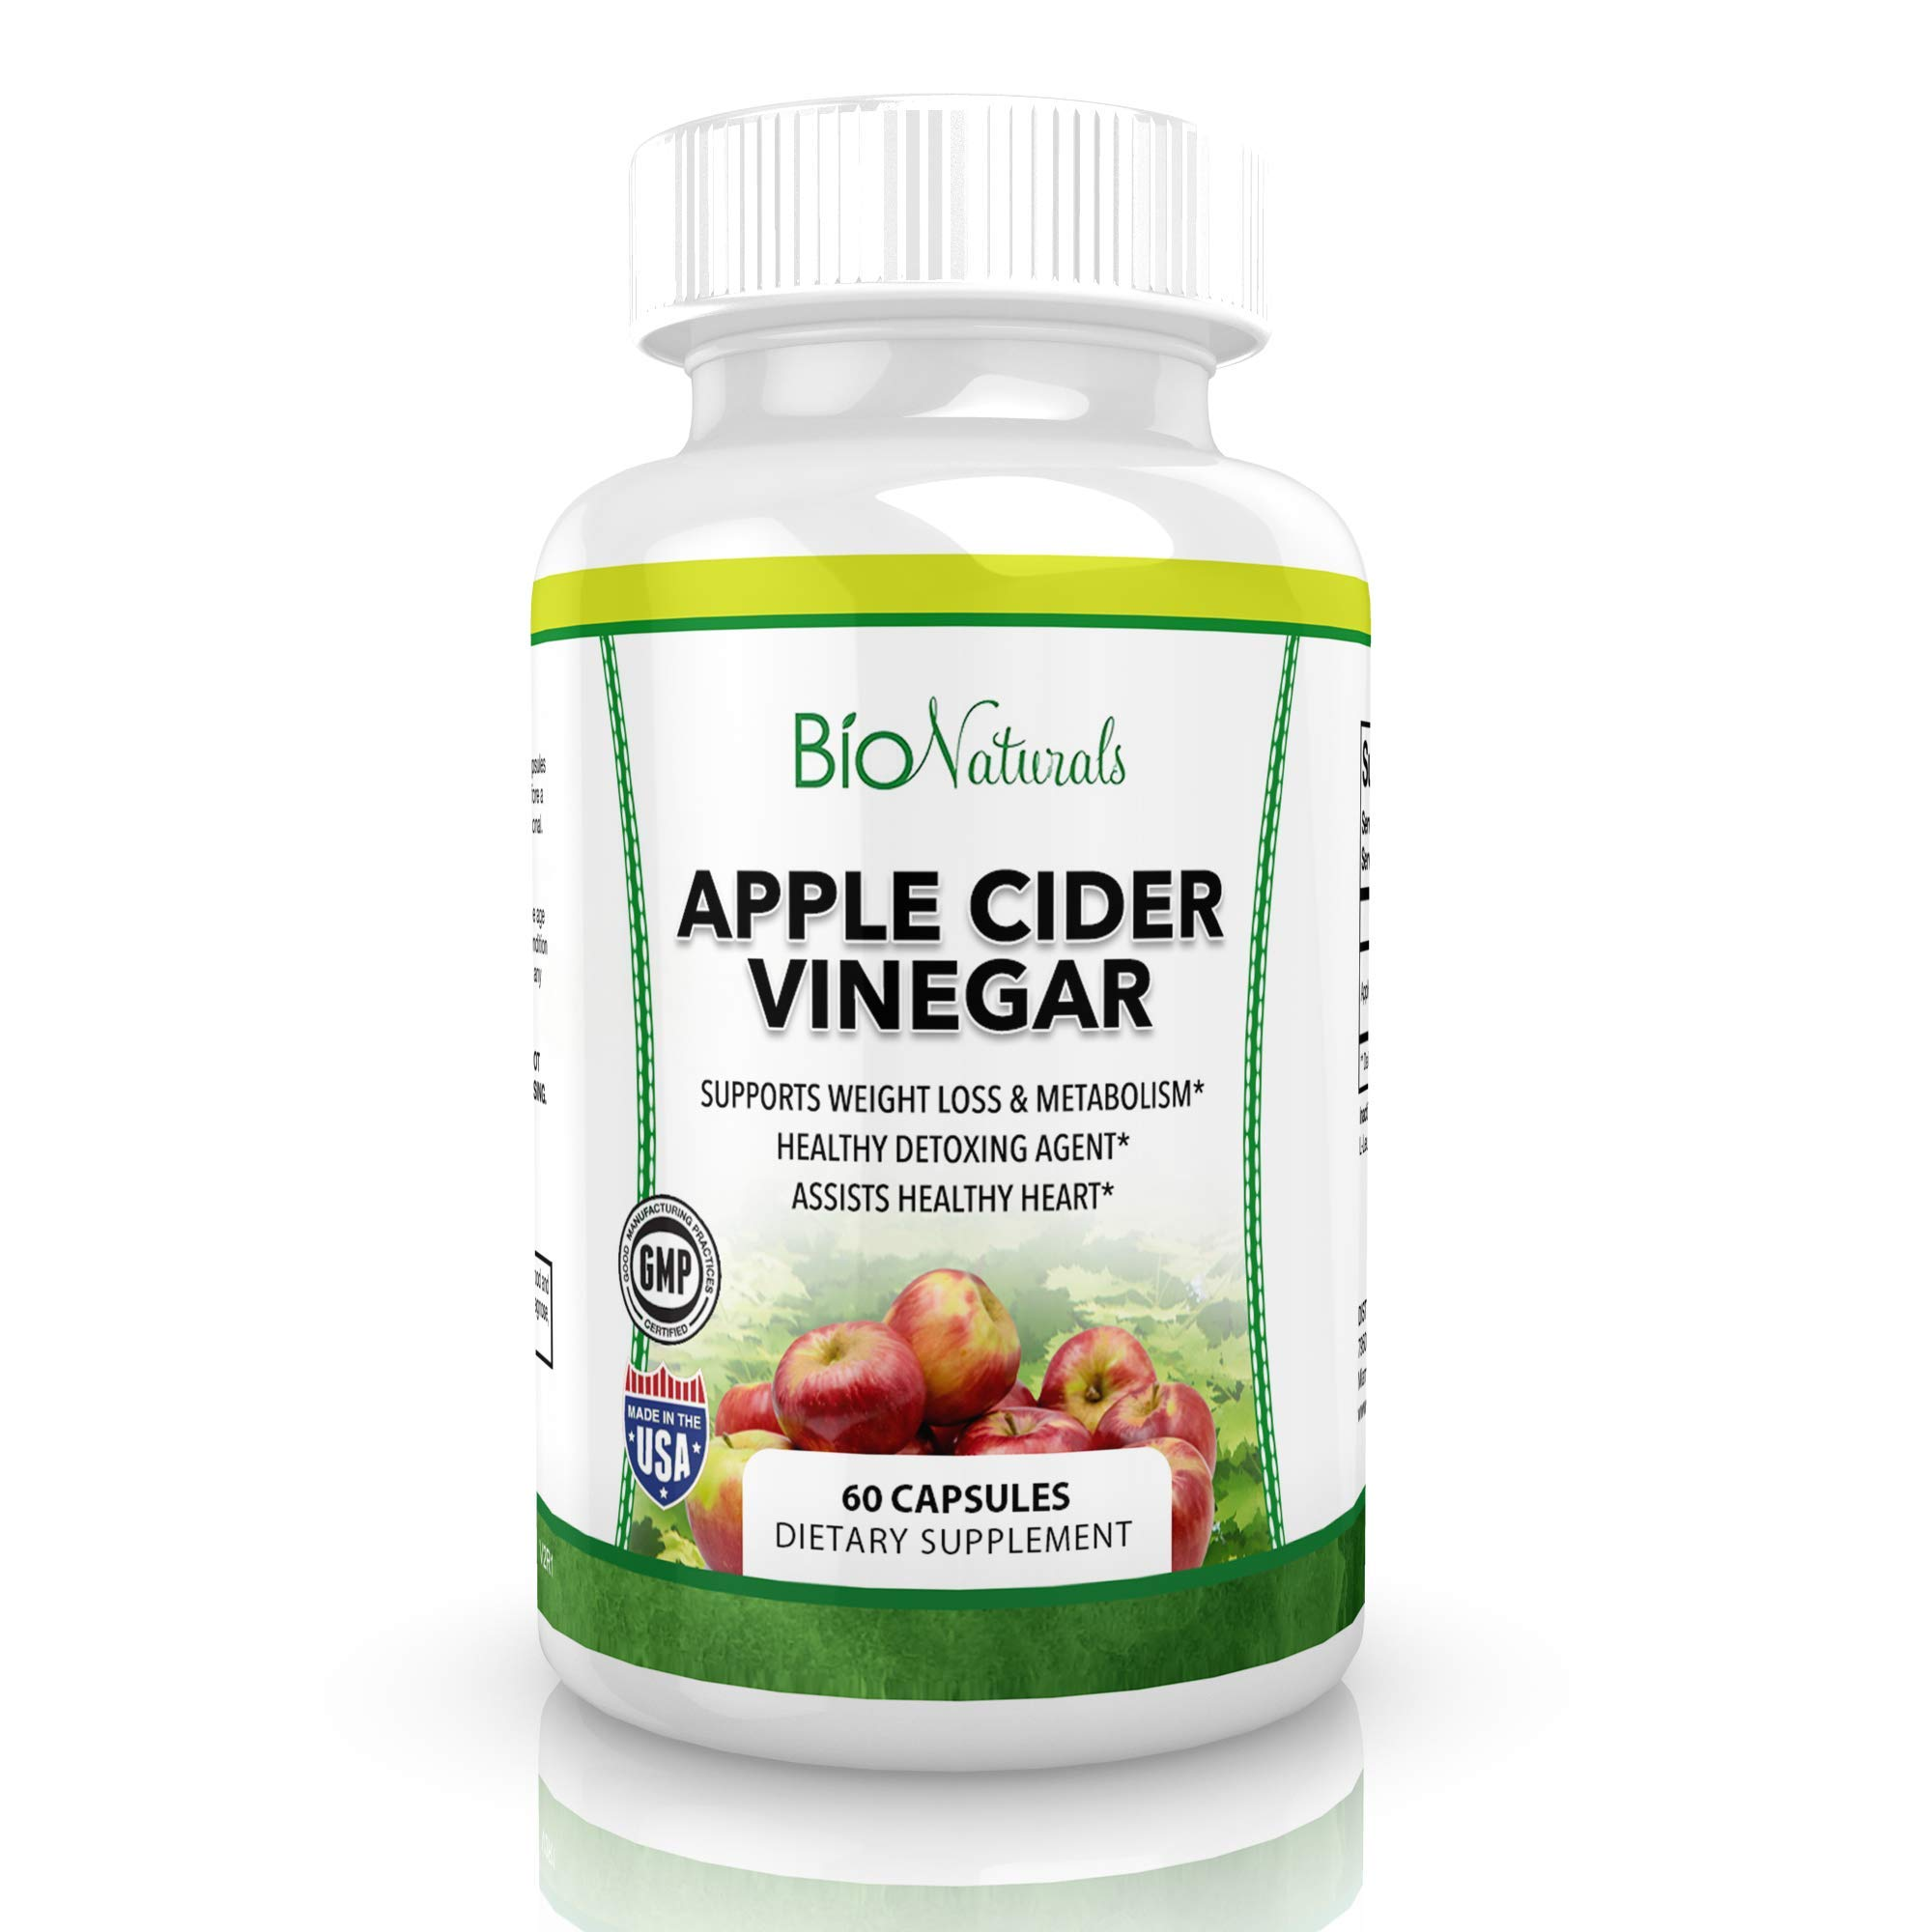 Apple Cider Vinegar 1300mg - All Natural Supplement Promotes Weight Loss with Healthy Detoxing, Suppresses Appetite and Improves Digestion - 60 Capsules